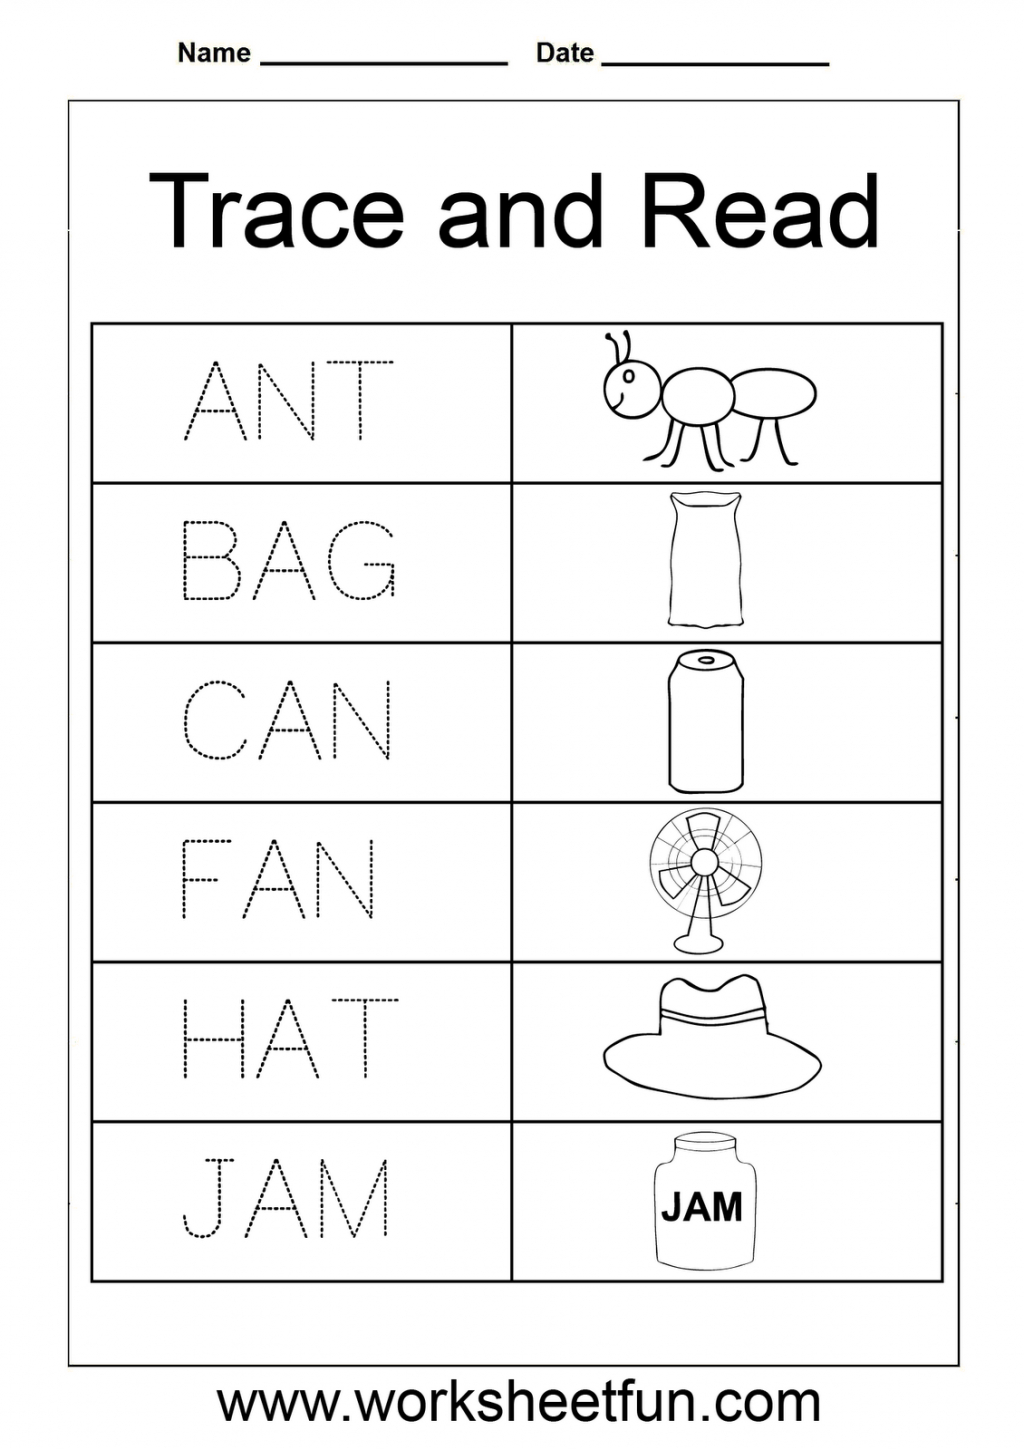 Letter Words Worksheets For En And With V Two In The Middle for Tracing Letters Words Worksheets